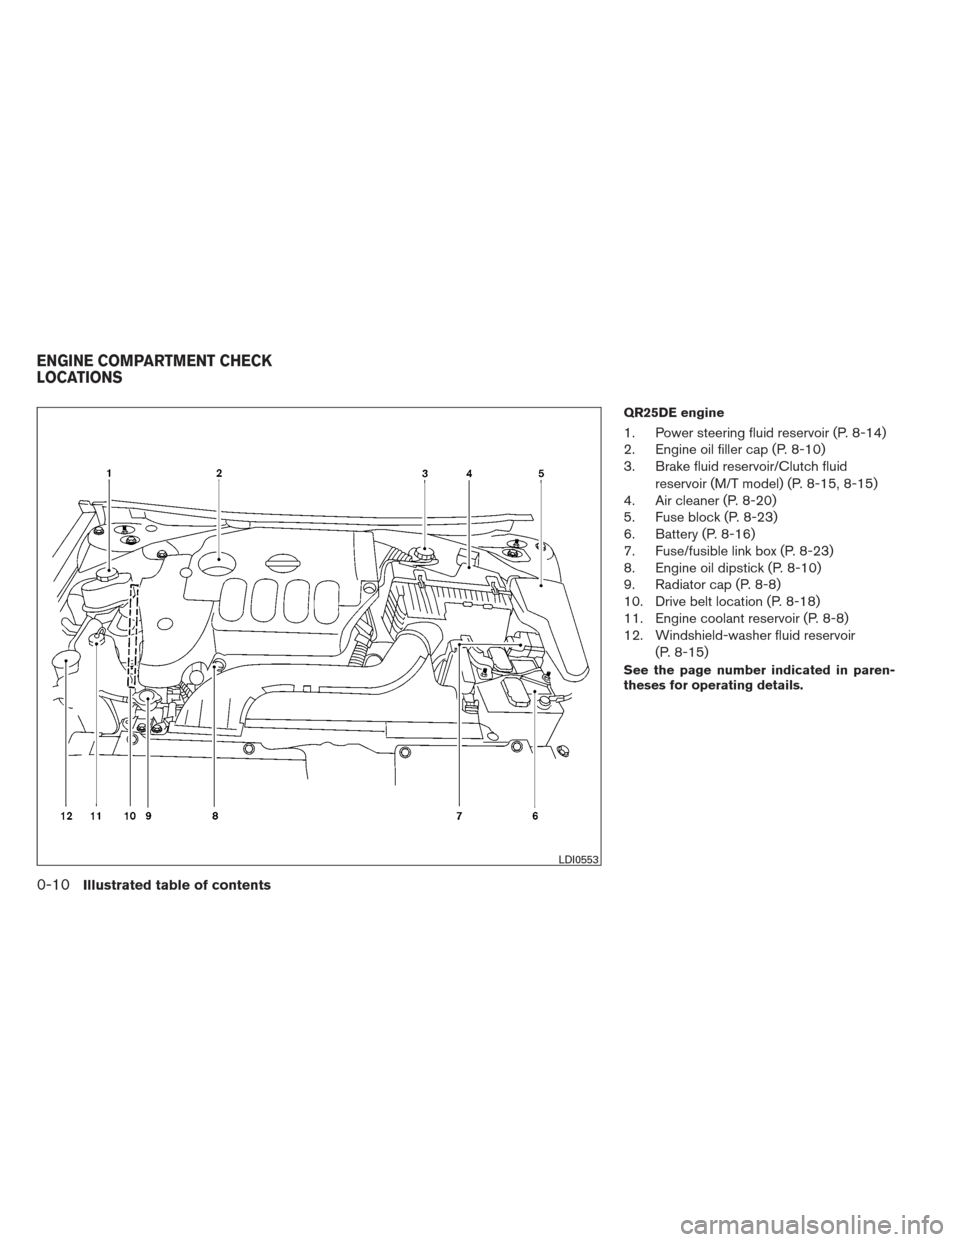 NISSAN ALTIMA COUPE 2012 D32 / 4.G User Guide QR25DE engine 1. Power steering fluid reservoir (P. 8-14) 2. Engine oil filler cap (P. 8-10) 3. Brake fluid reservoir/Clutch fluidreservoir (M/T model) (P. 8-15, 8-15) 4. Air cleaner (P. 8-20) 5. Fuse